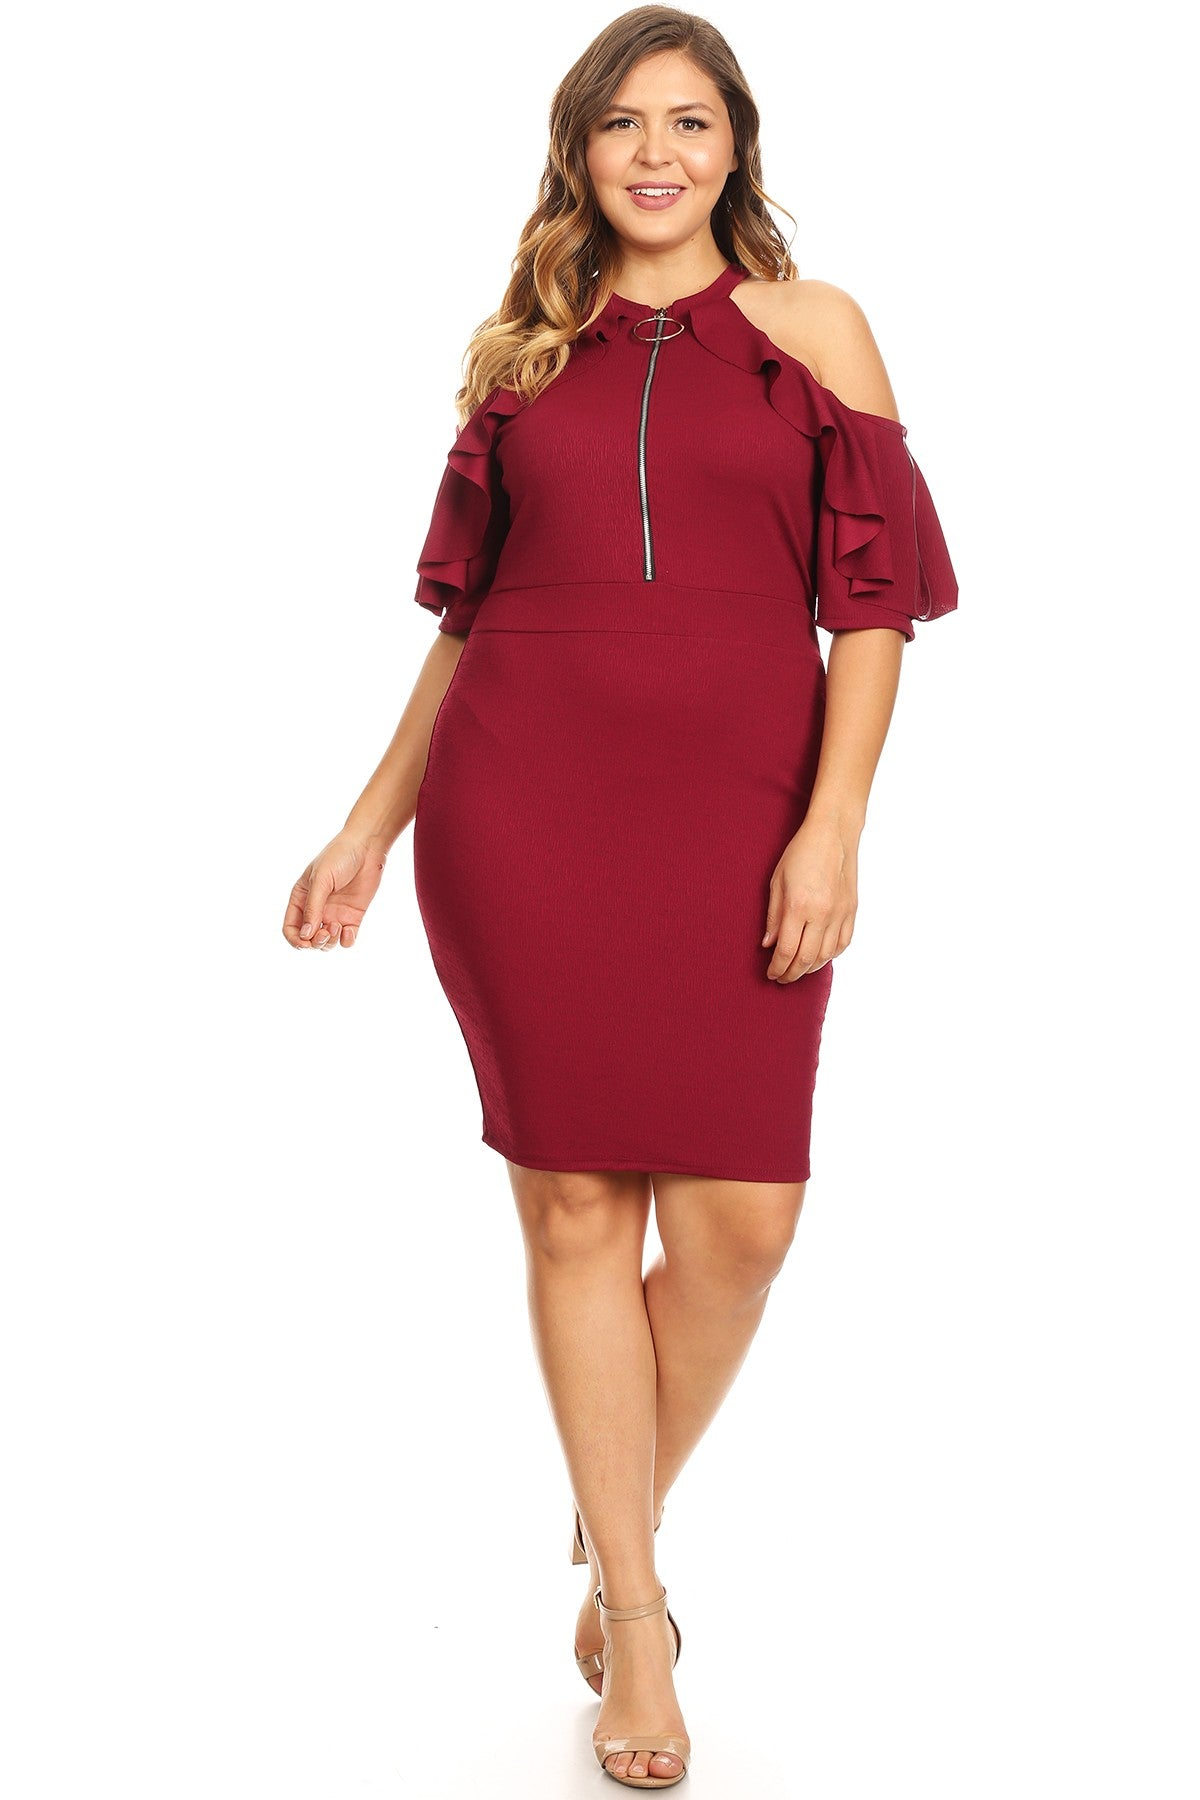 13019- Magenta/Plum Zipper Ruffle Dress